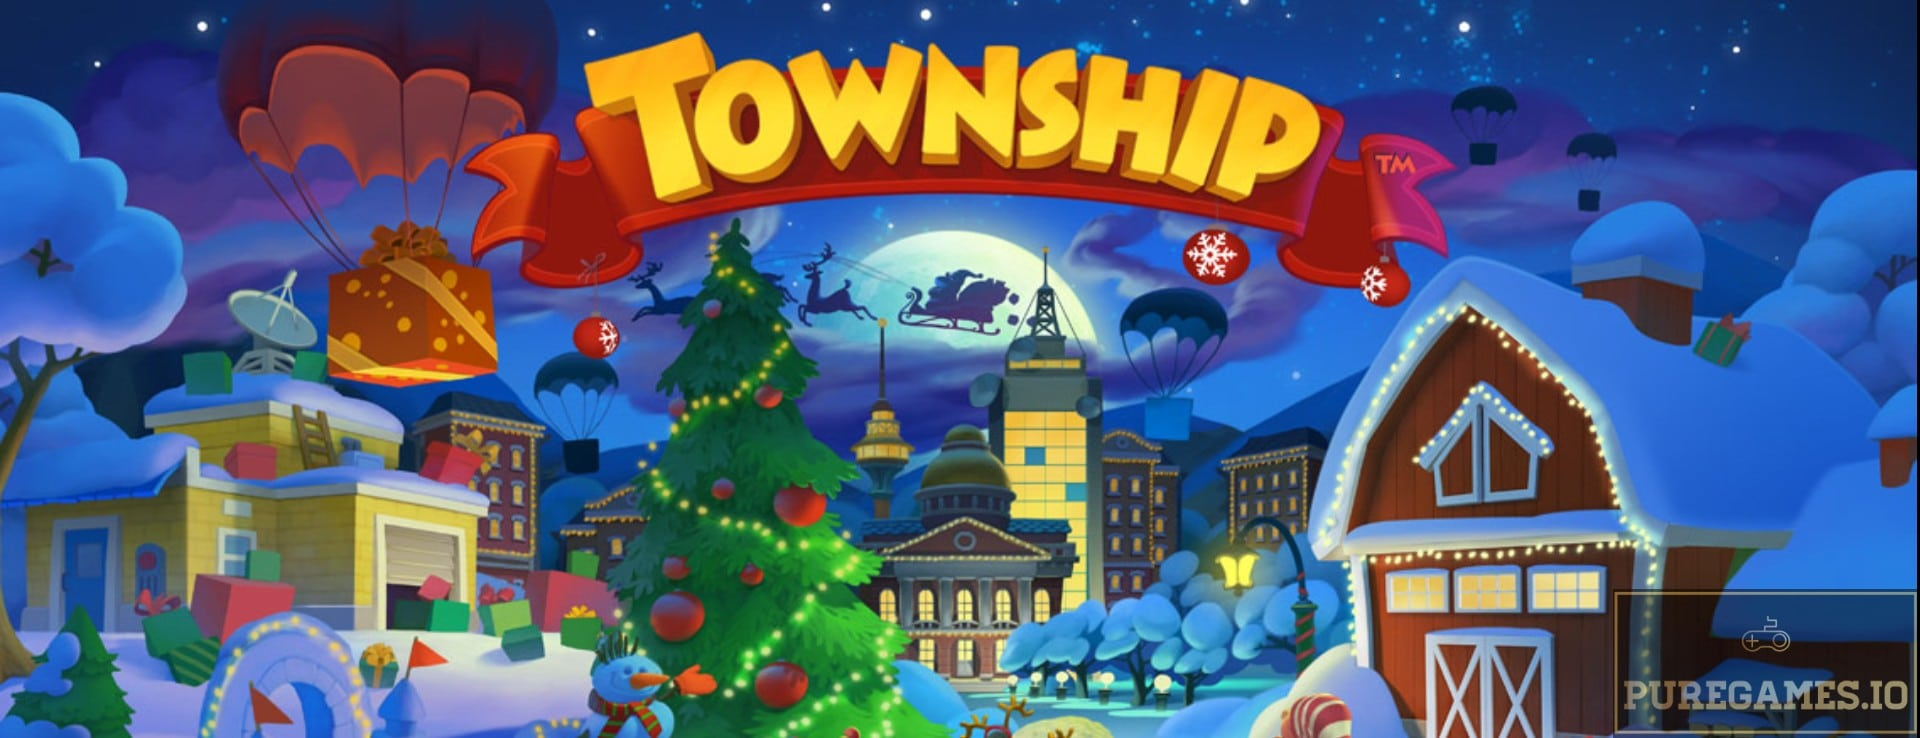 Download Township APK for Android/iOS 7